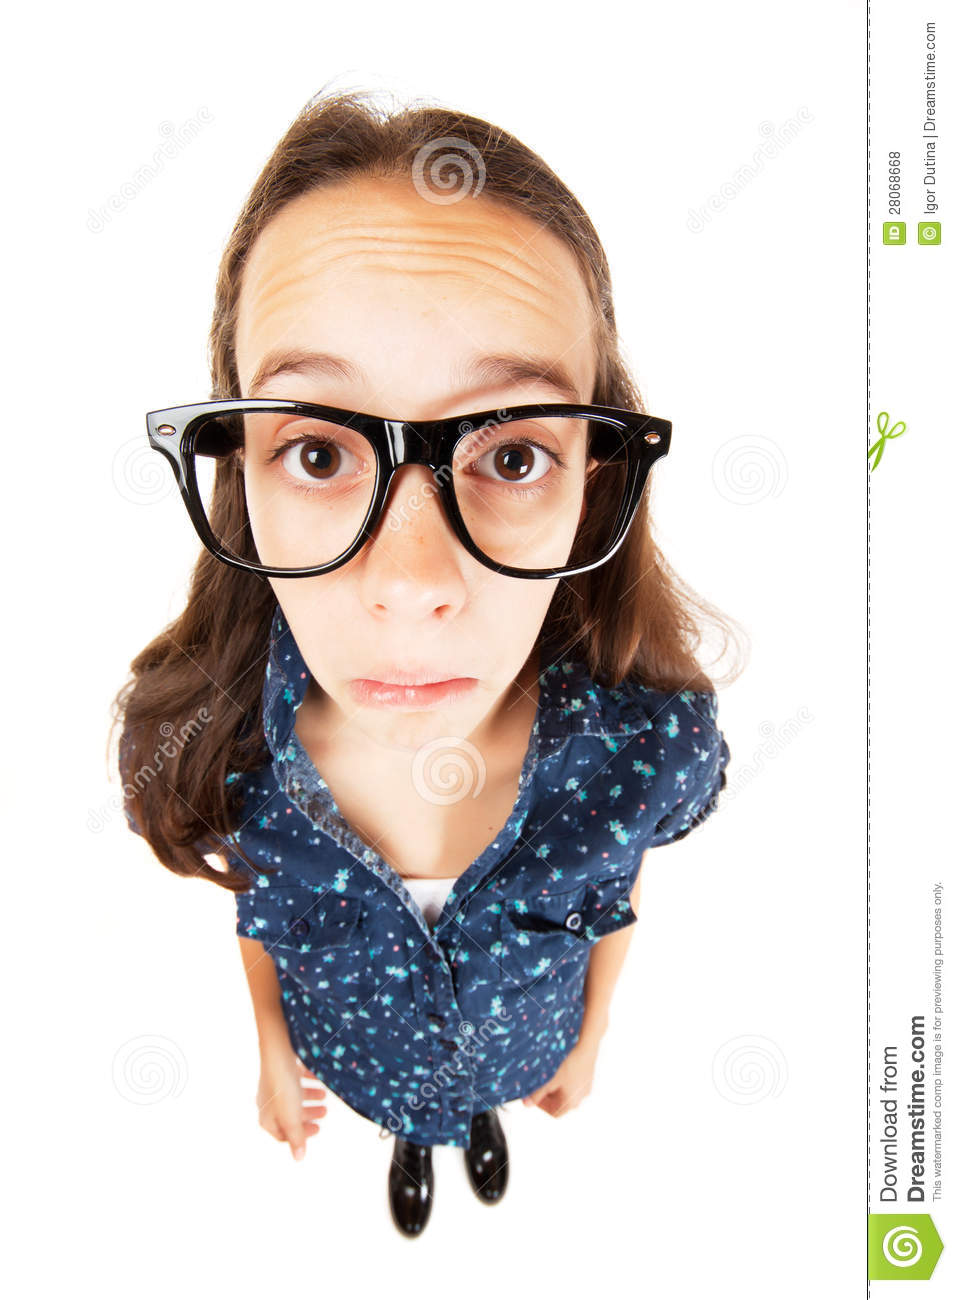 Confused Nerd Girl Royalty Free Stock Photos - Image: 28068668